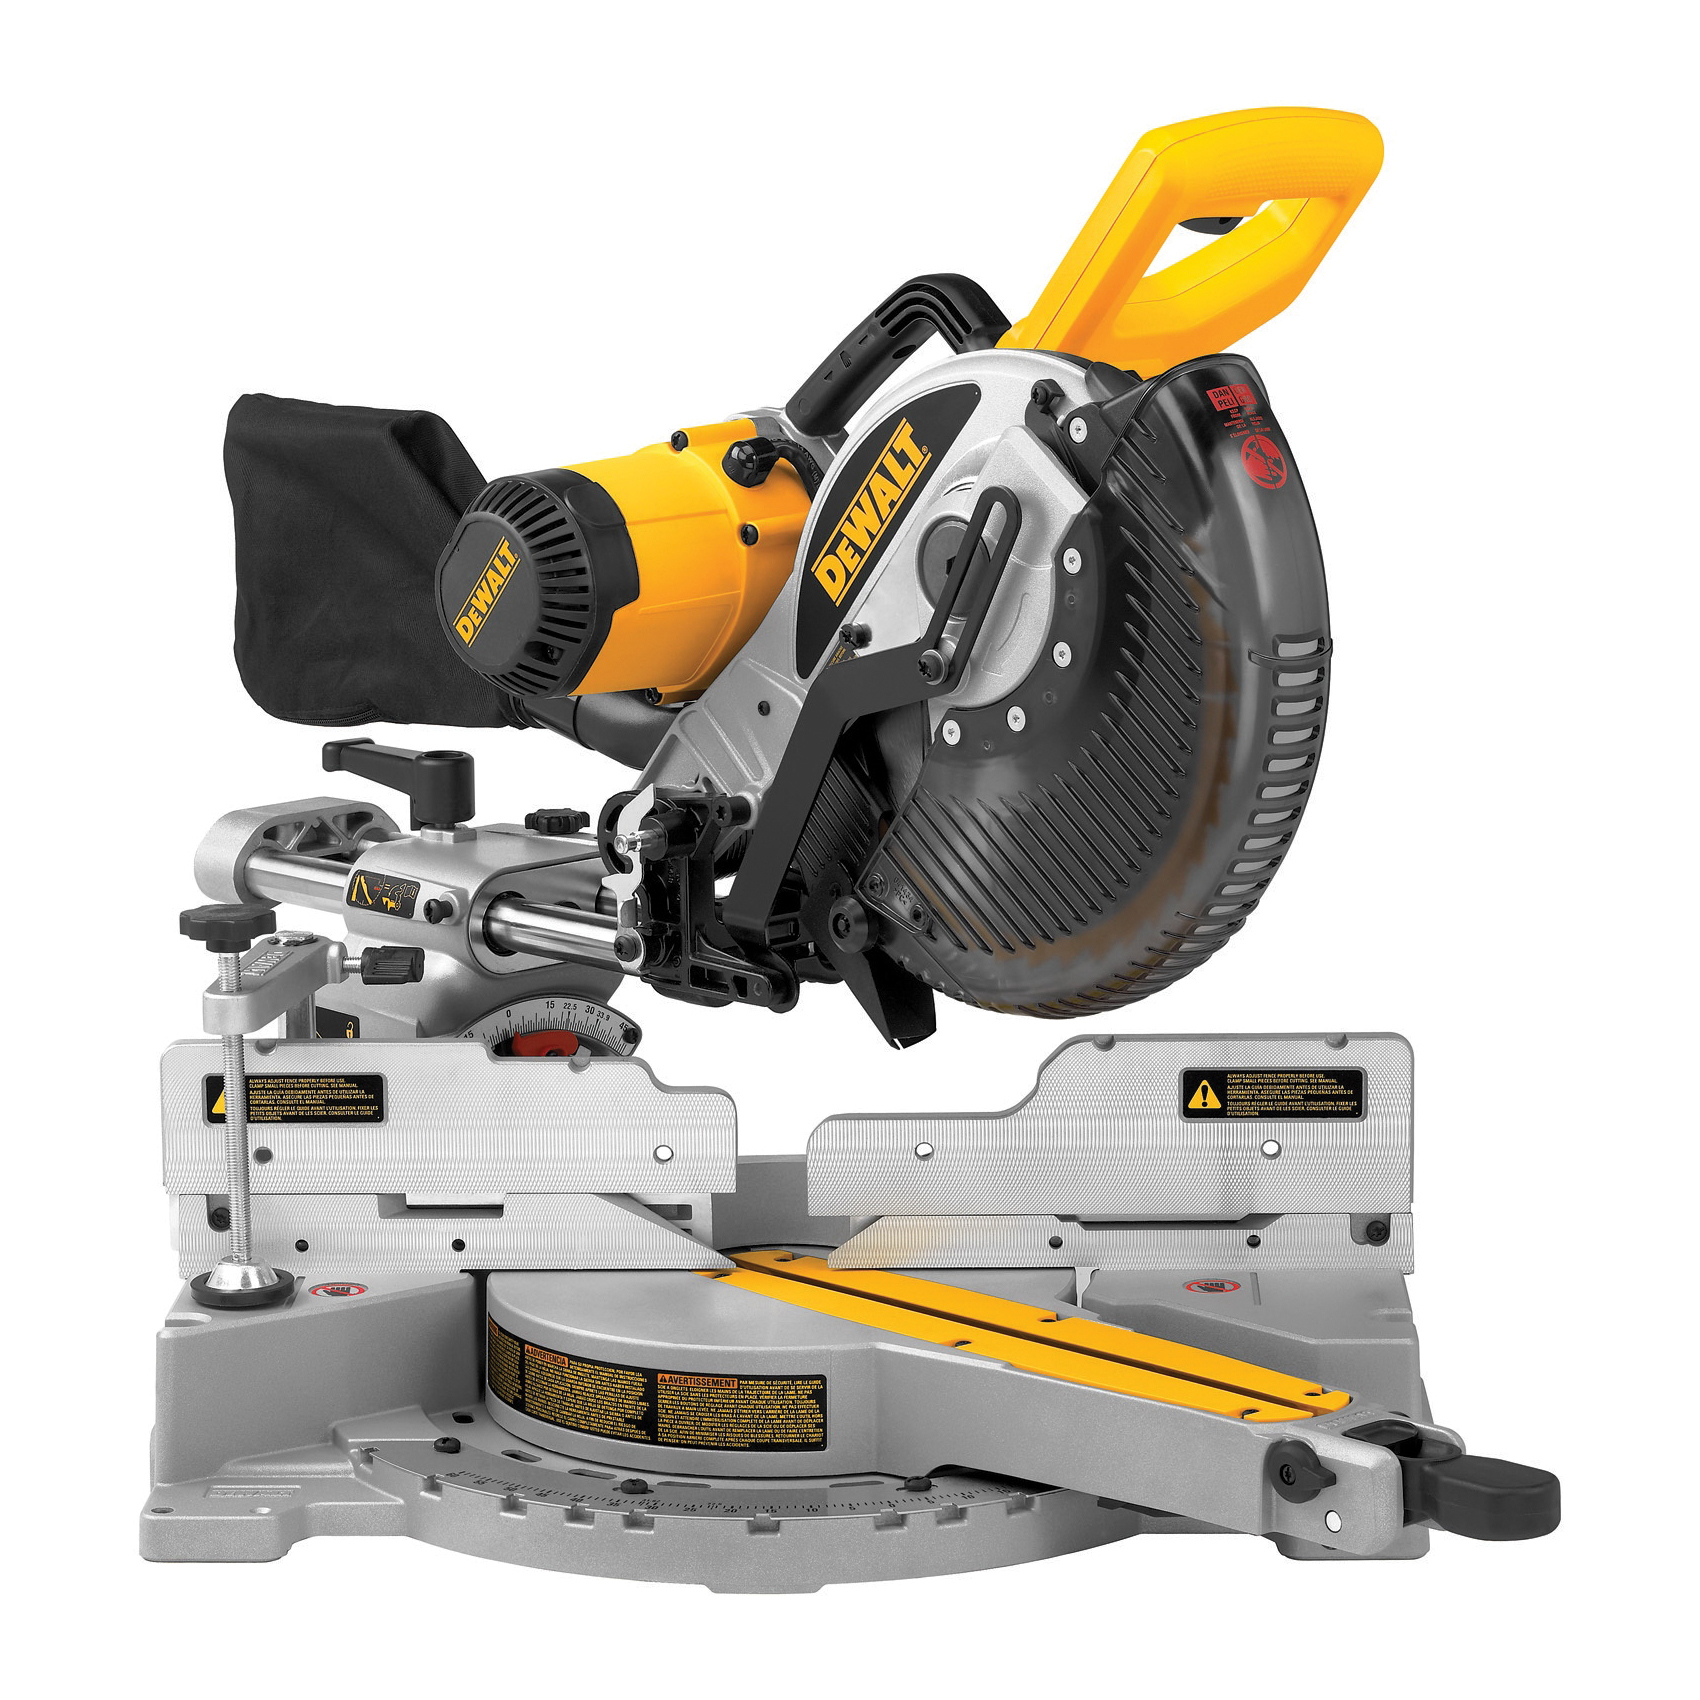 DeWALT® DW717 Double Bevel Sliding Compound Miter Saw, 10 in Blade, 5/8 in Arbor/Shank, 6 in Left, 3-1/2 in Right Vertical, 6-1/4 in Vertically Nested, 14 in Horizontal Cutting, 60 deg Left/52 deg Right Miter, 0 to 48 deg Left/Right Bevel